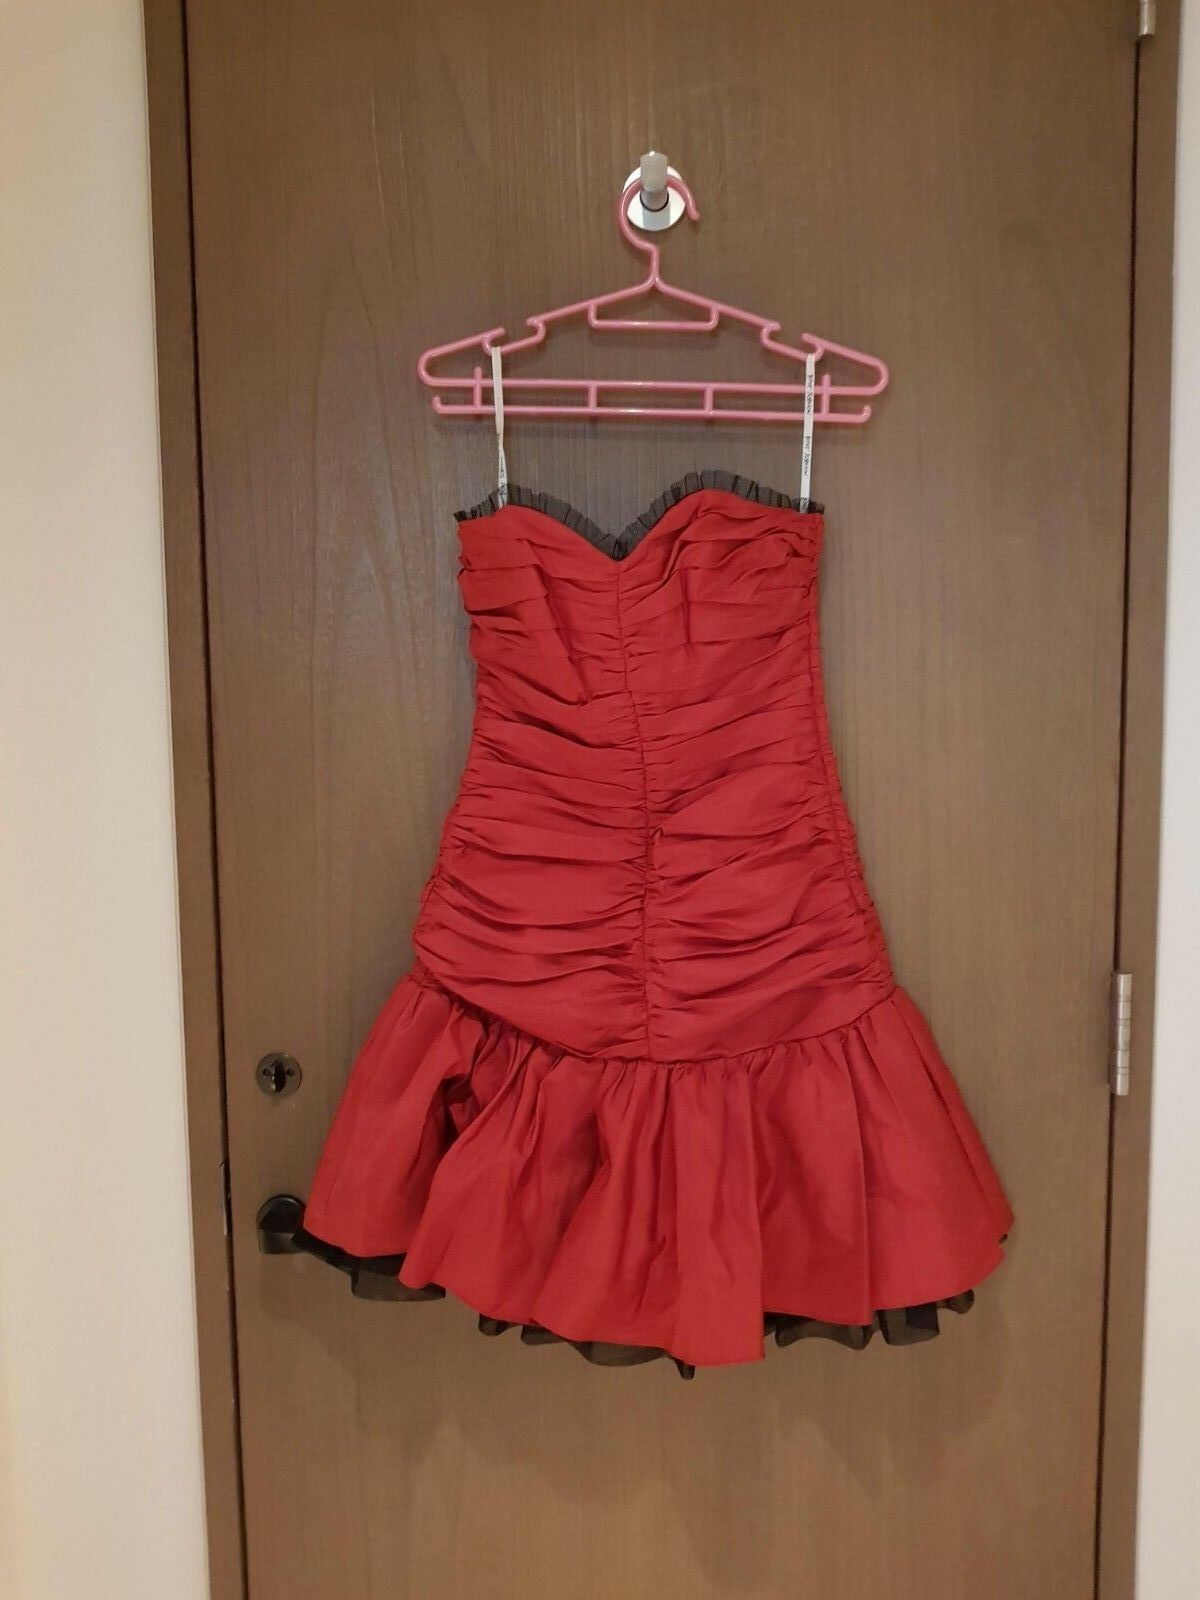 NWT Auth Betsey Johnson Red Lace Ruffle Corset Bustier Tulle Dress sz.4